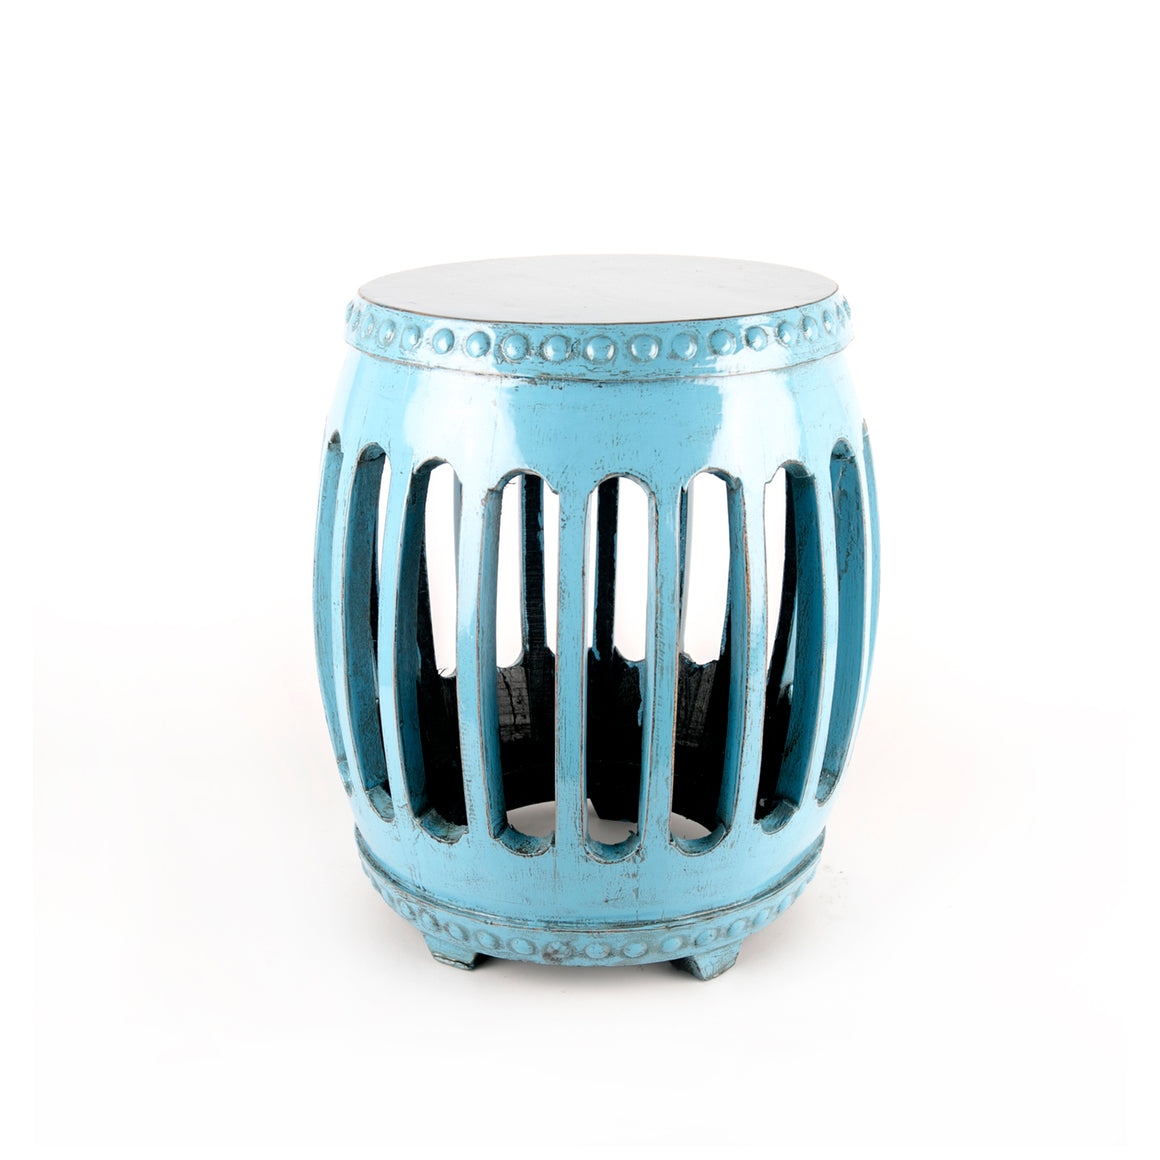 Powder blue elmwood stool